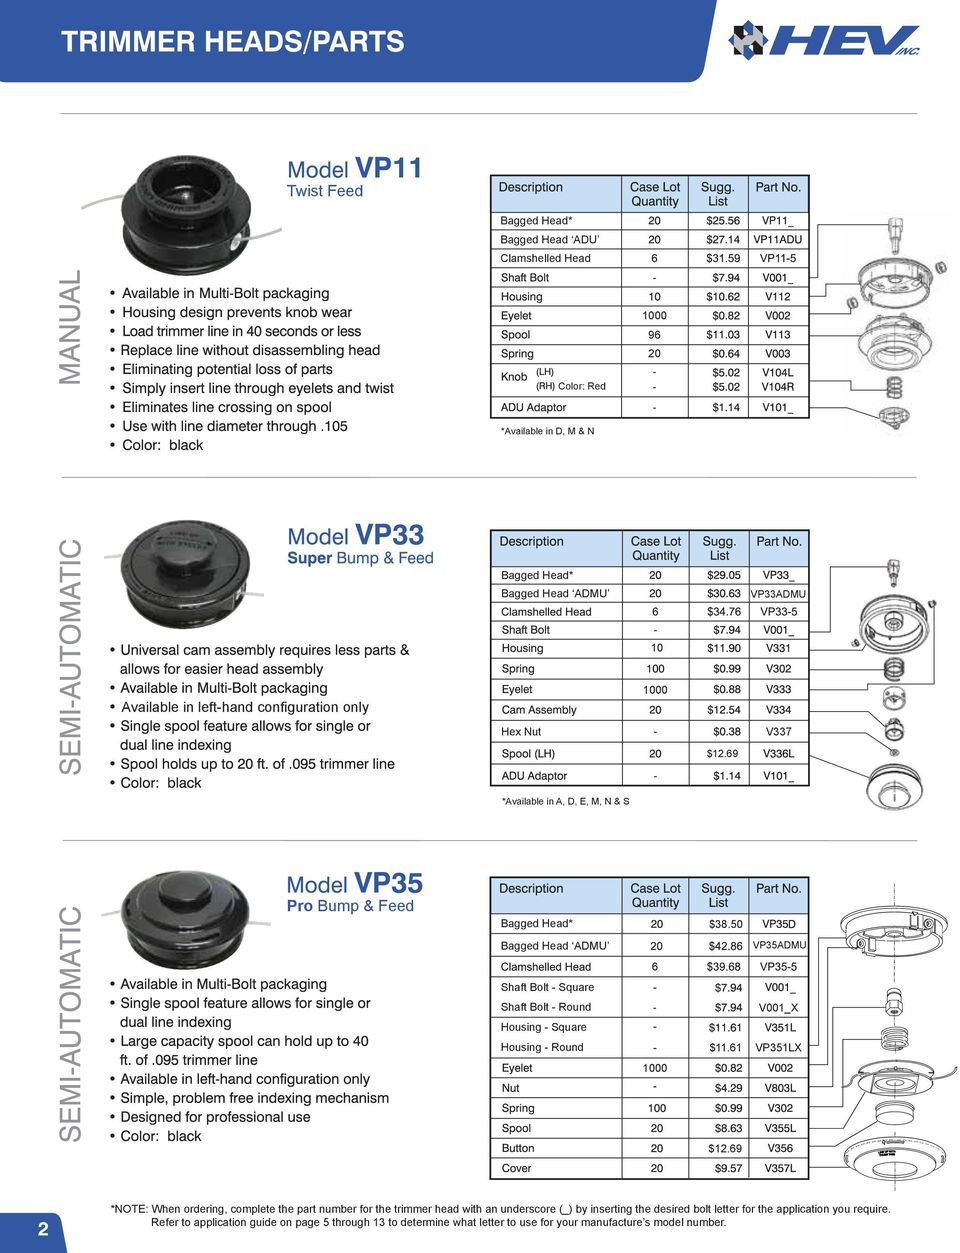 69 *vailable in,, E, M, N & S Pro Bump & Feed Bagged Head* Bagged Head MU Shaft Bolt - Square Shaft Bolt - Round Housing - Square Housing - Round 6 - - - 1000 - $38.